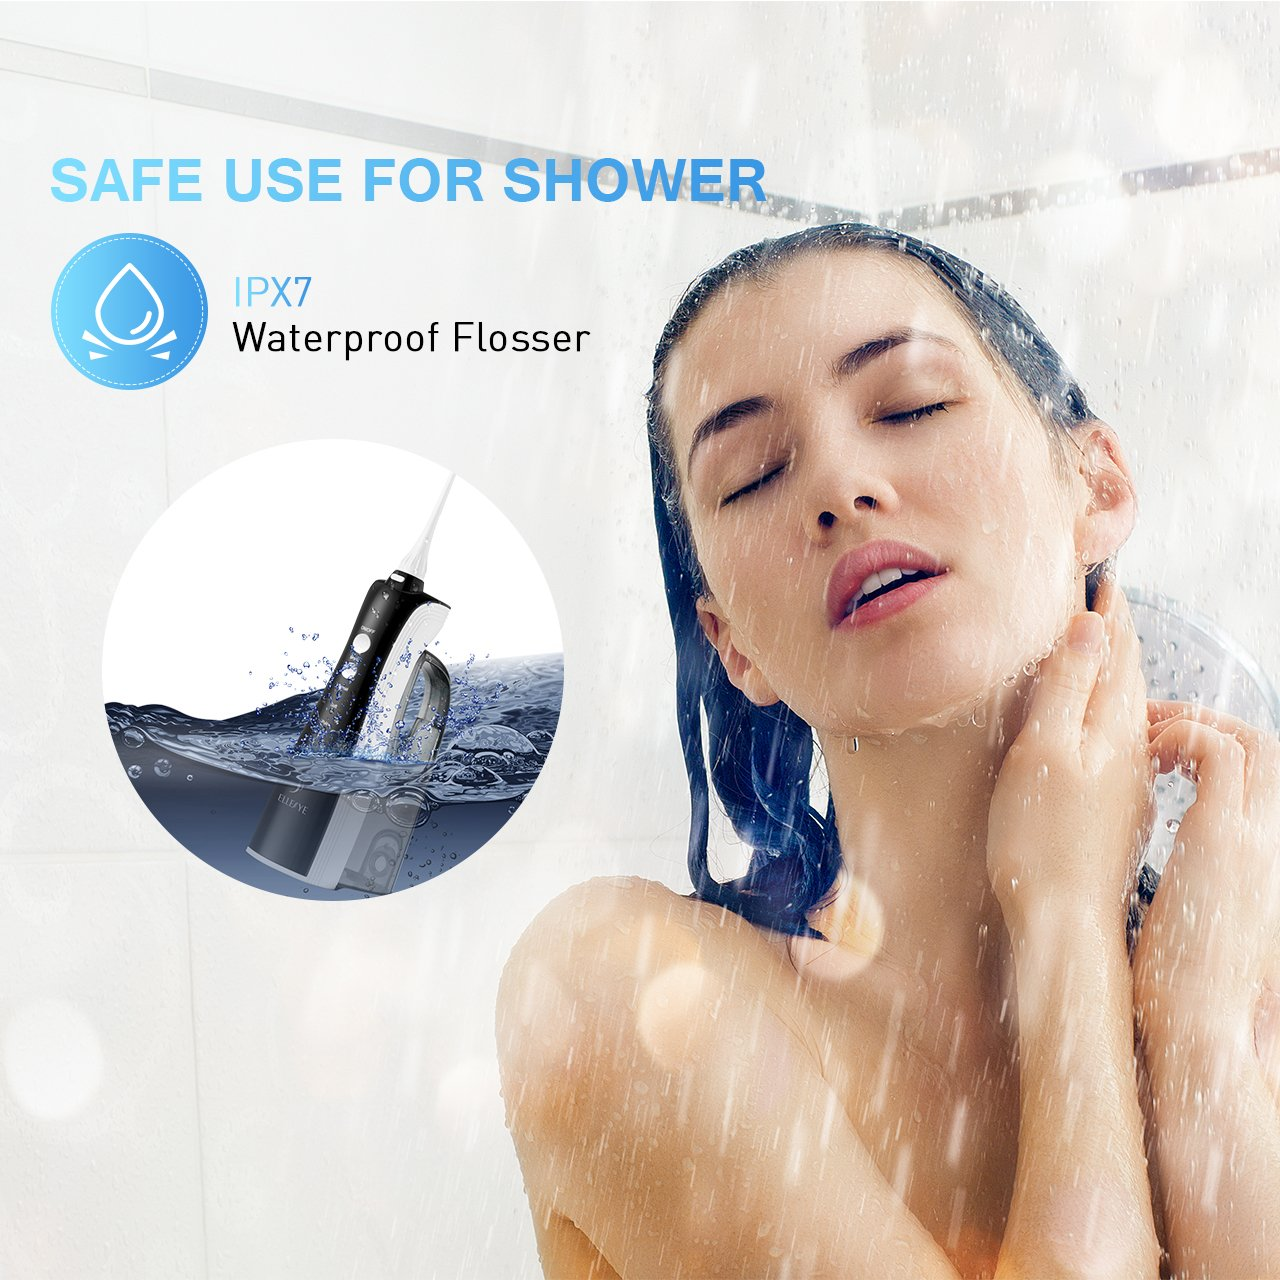 [UPGRADED] 330ML Cordless Water Flosser Teeth Cleaner, ELLESYE High Pulse Rechargeable Portable Oral Irrigator for Travel & Office Use, IPX7 Waterproof Dental Flosser for Shower with 2 Tips for Family by ELLESYE (Image #6)